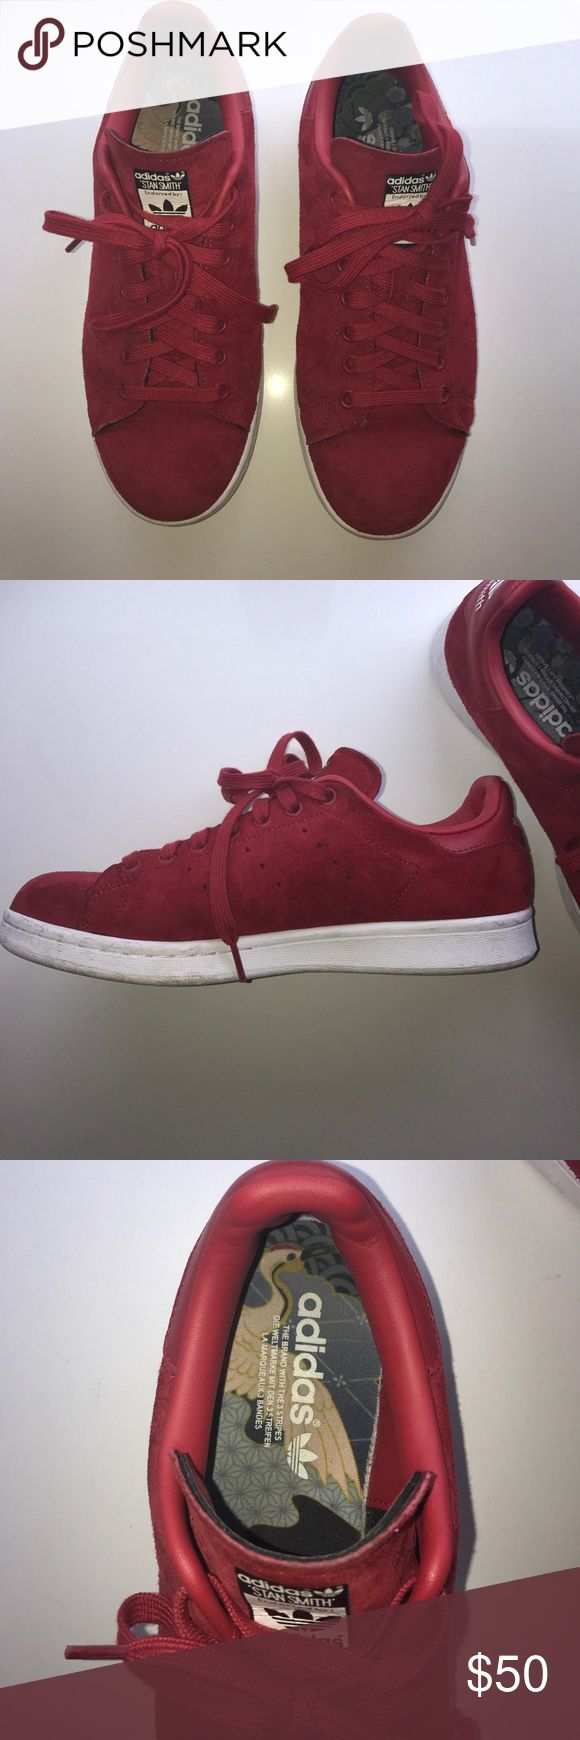 Adidas - Stan Smith - RED SUEDE Worn a couple times - in good condition adidas Shoes Sneakers